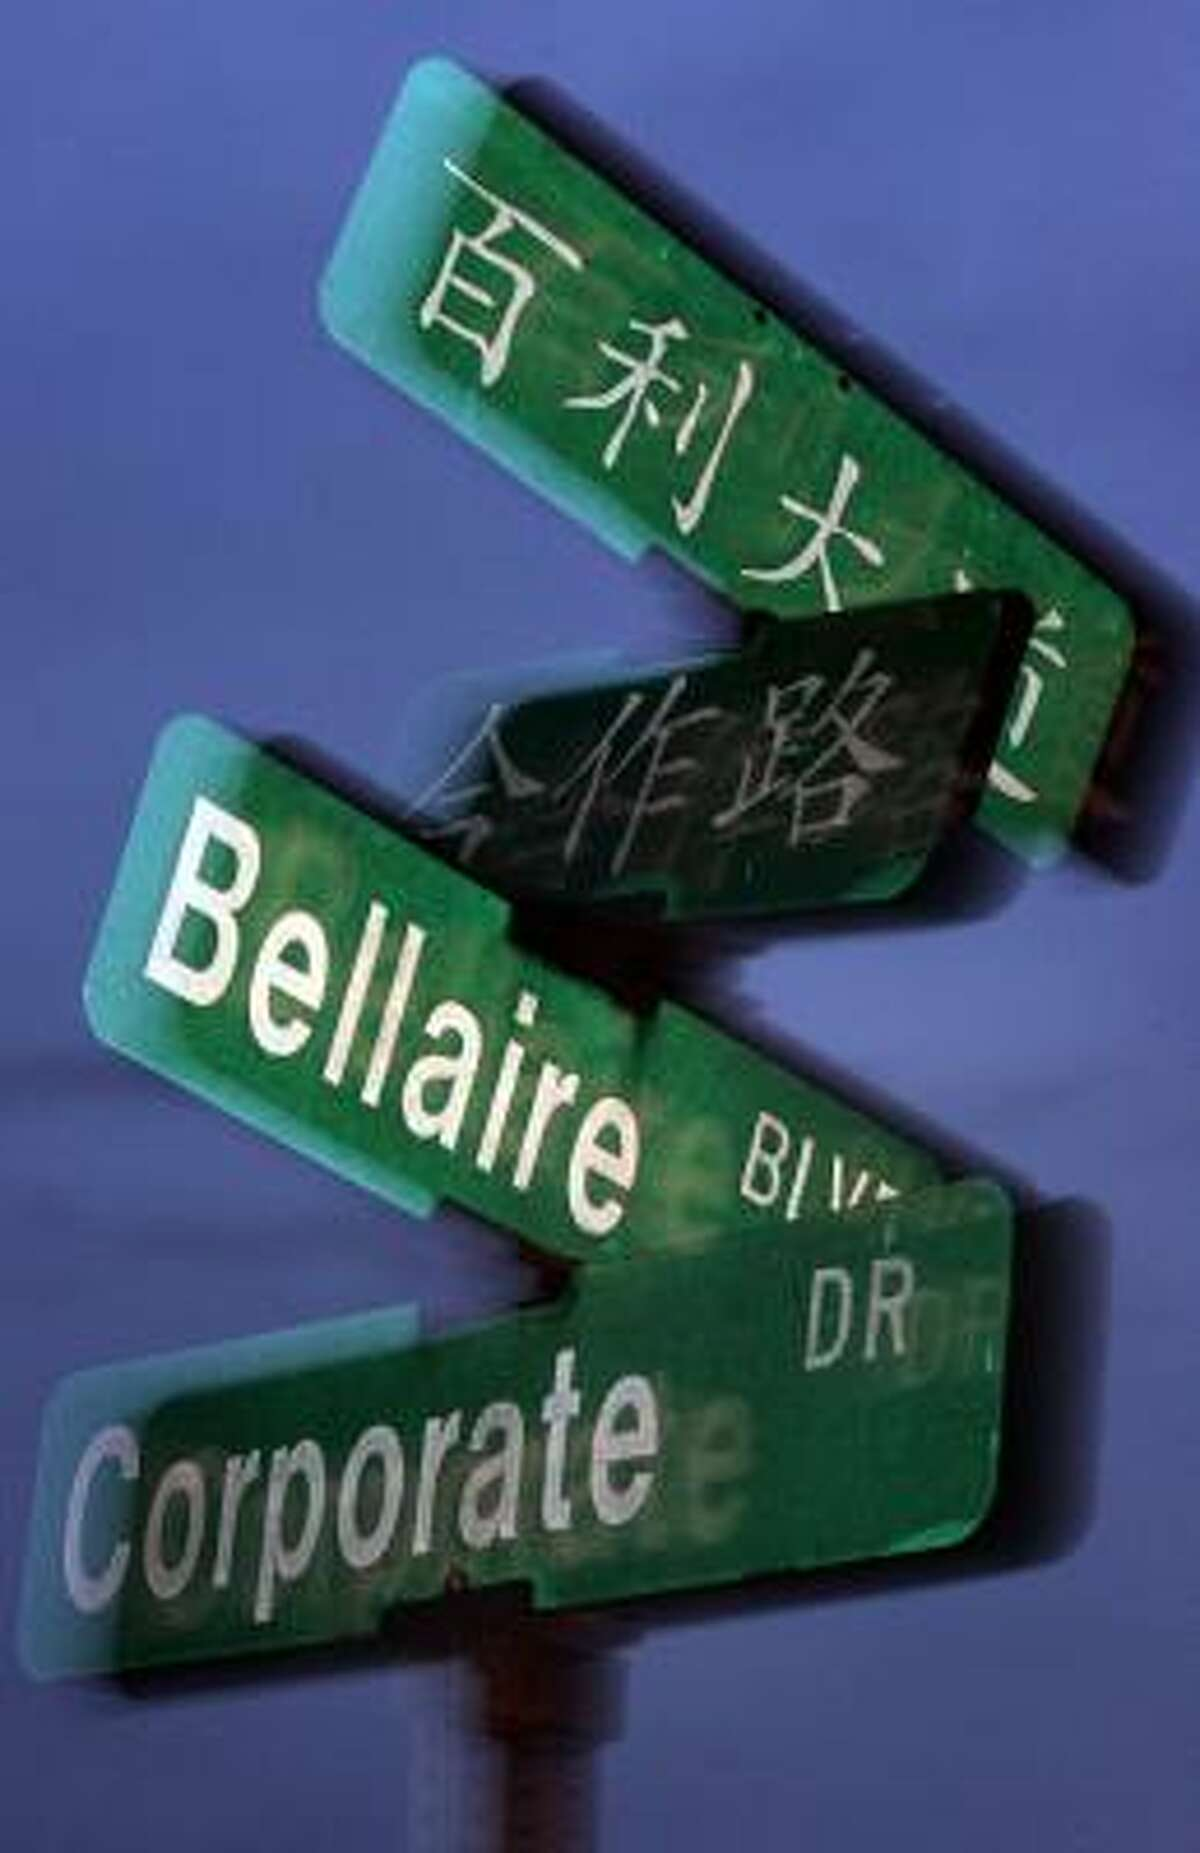 The Chinese name for Bellaire translates to